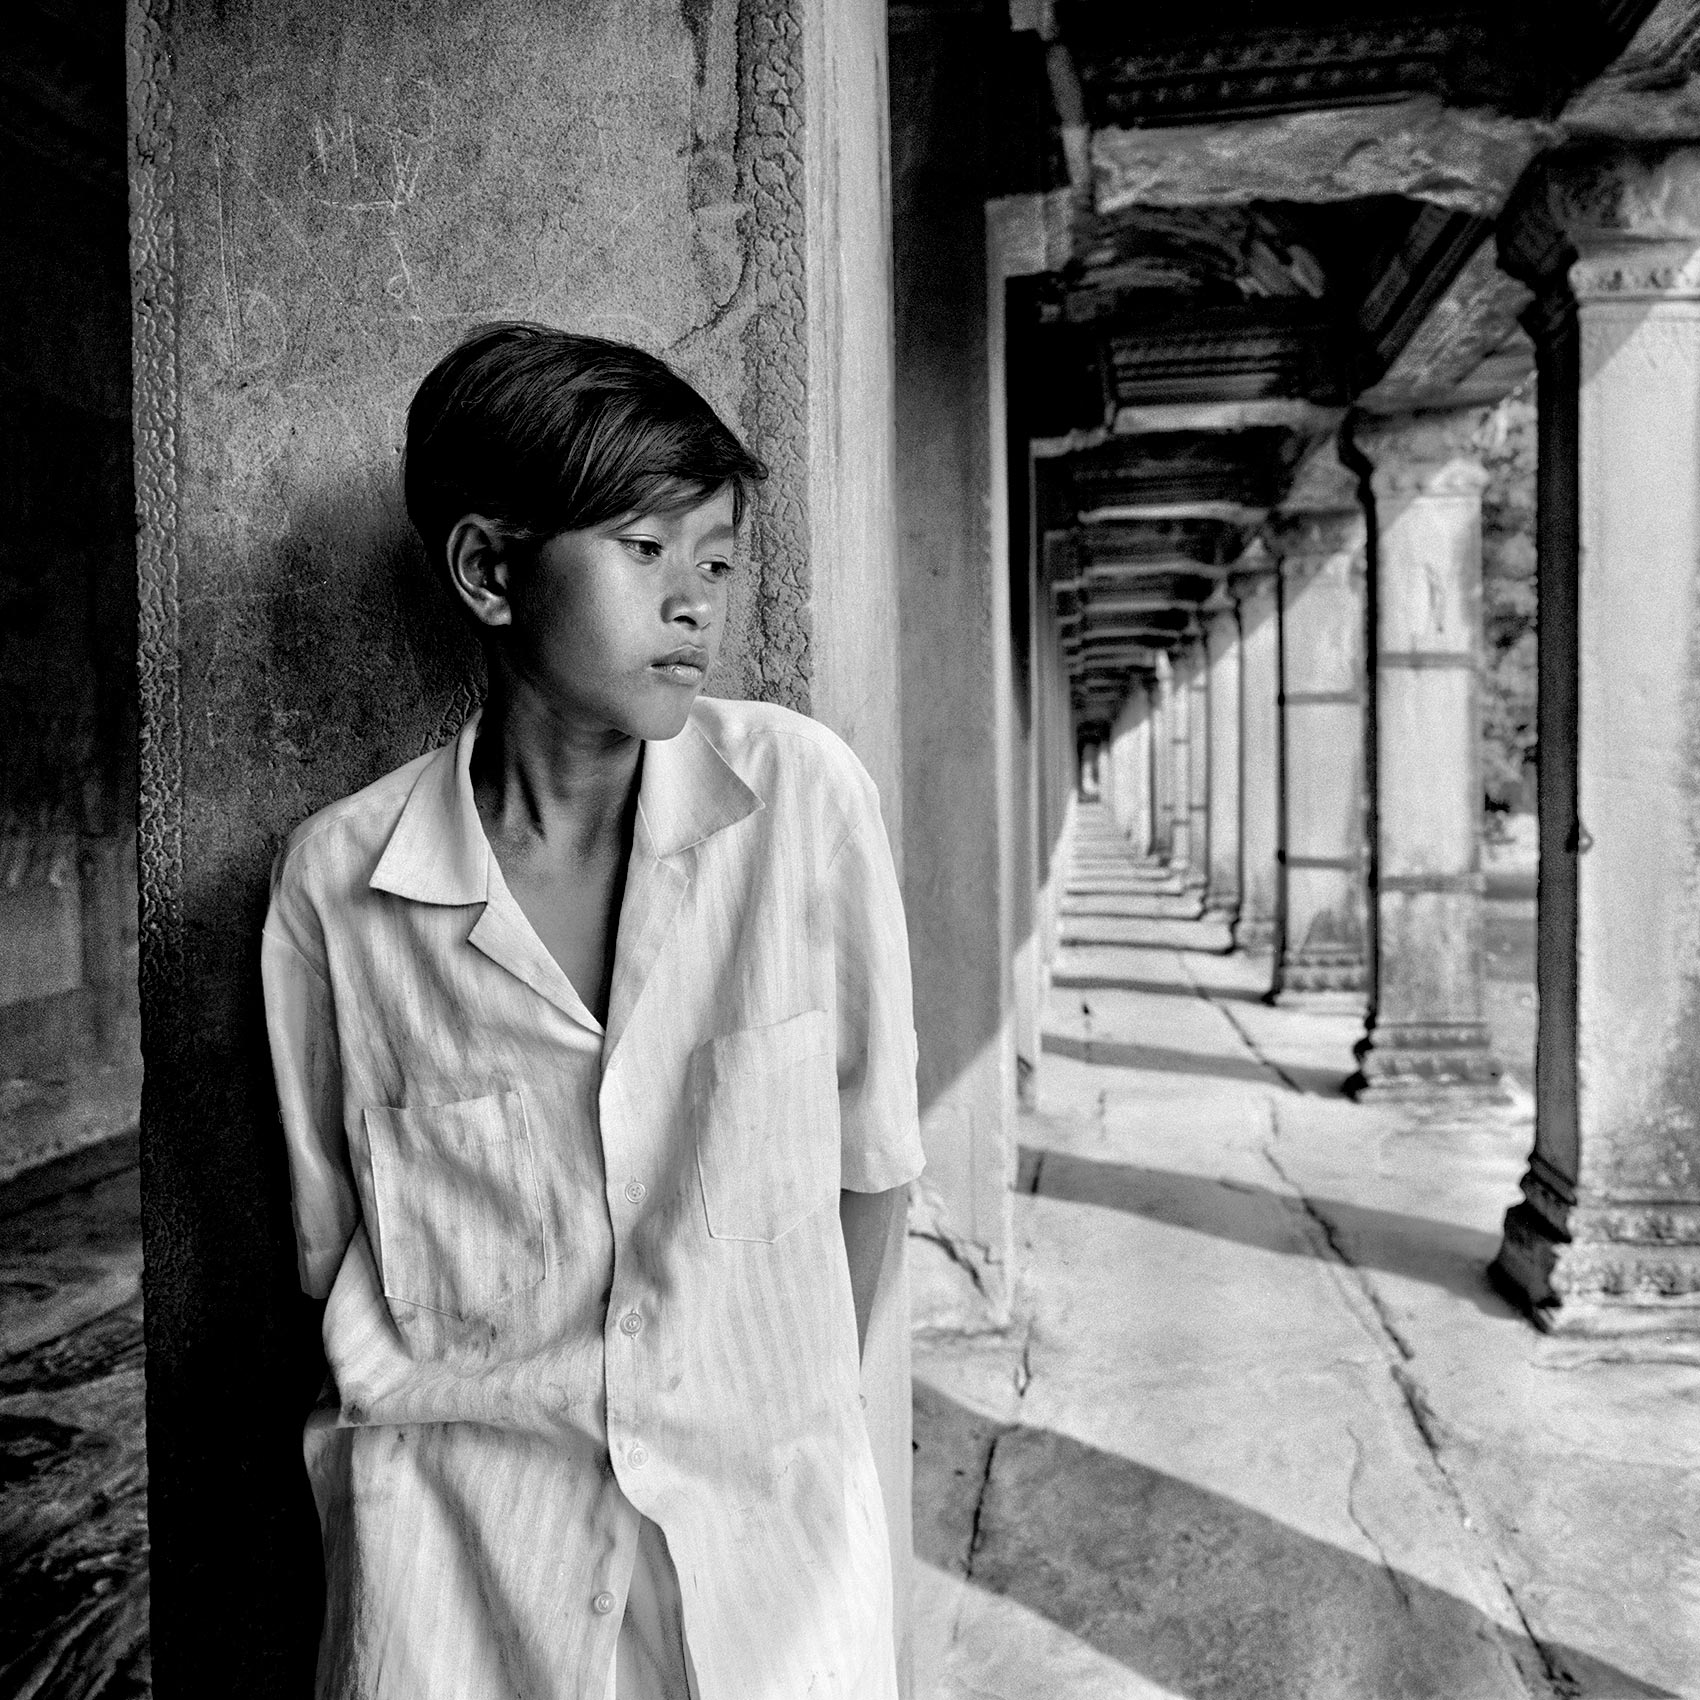 a-young-boy-who-begs-for-money-waits-in-the-early-morning-for-tourists-to-arrive-in-angkor-wat-cambodia